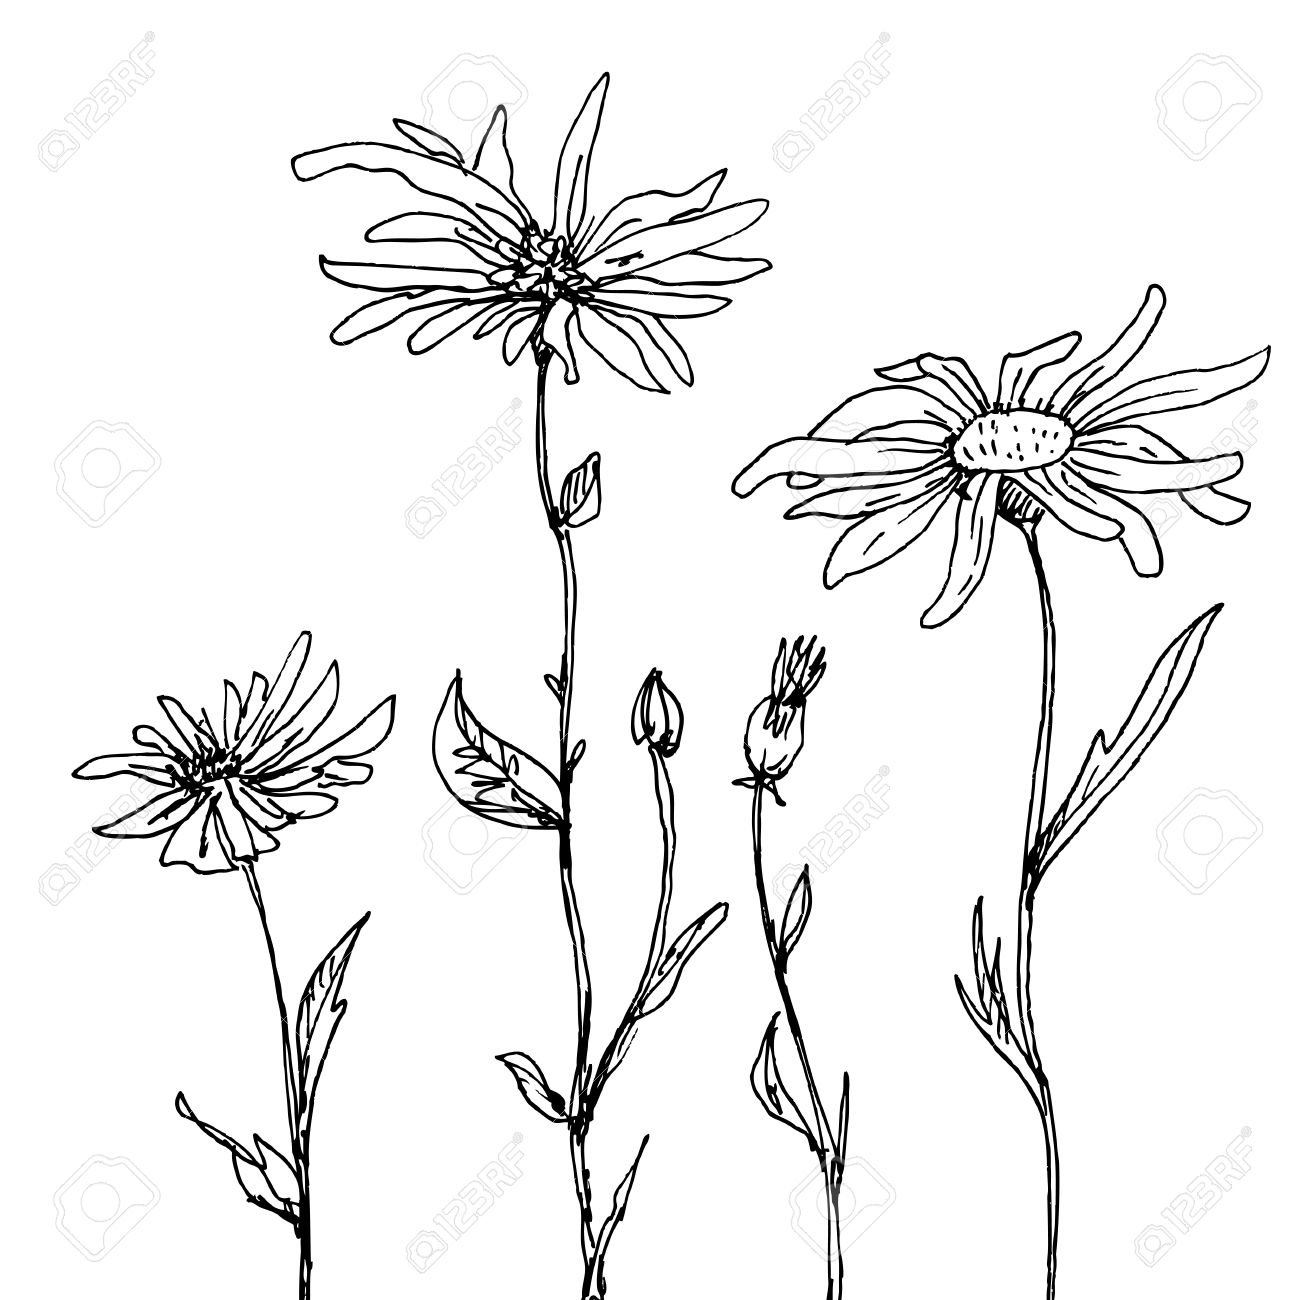 1300x1300 Floral Composition With Ink Drawing Daisy Flowers, Doodle Wild